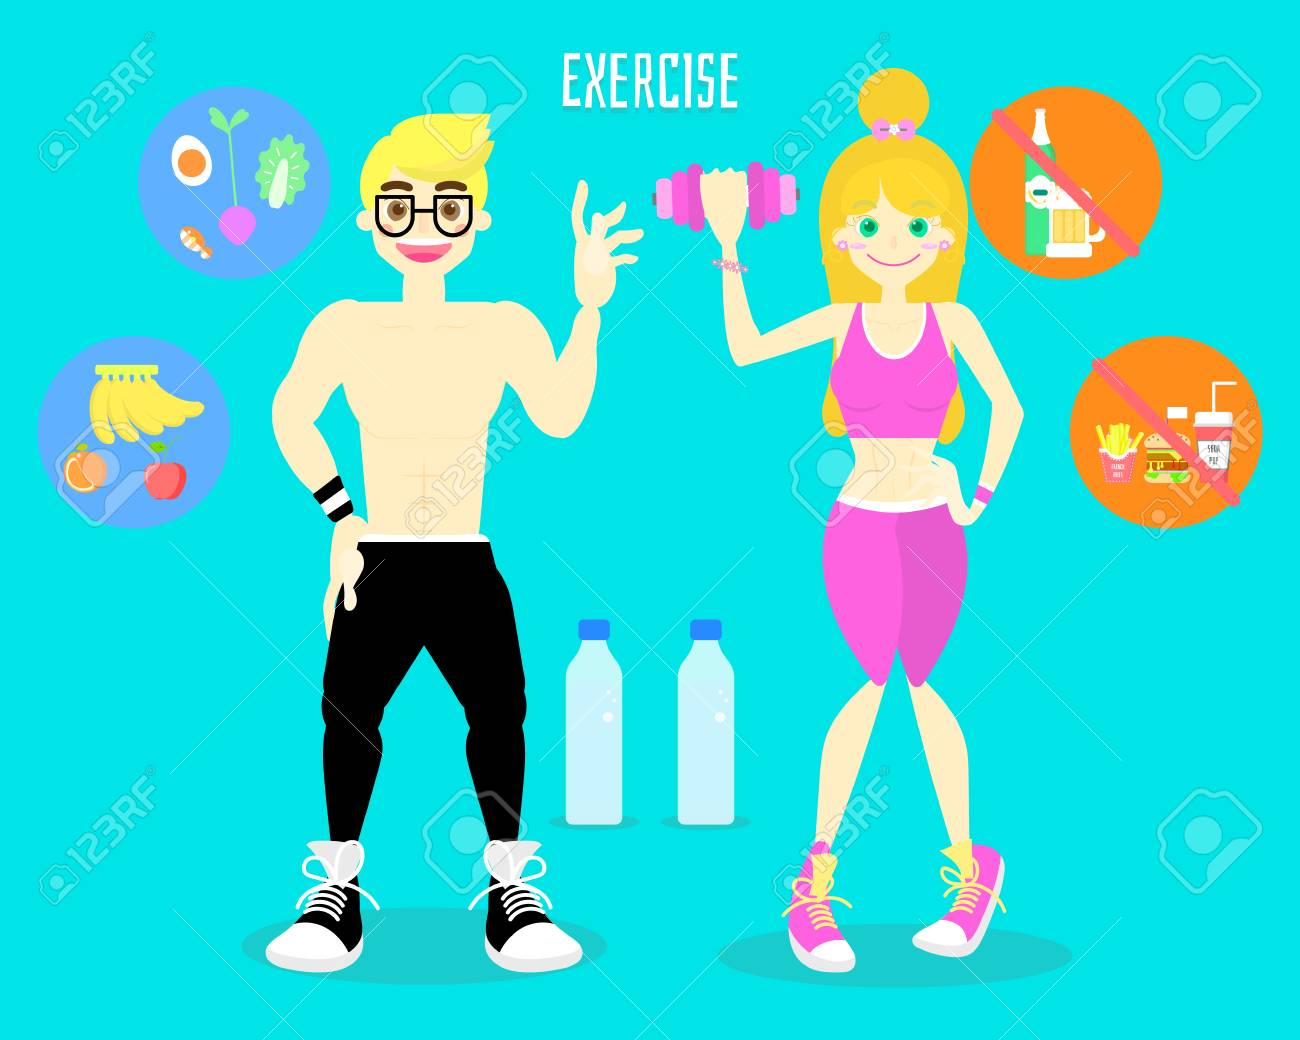 Activity Fitness Body Building Work Out Healthy Body In Shape Royalty Free Cliparts Vectors And Stock Illustration Image 115301510